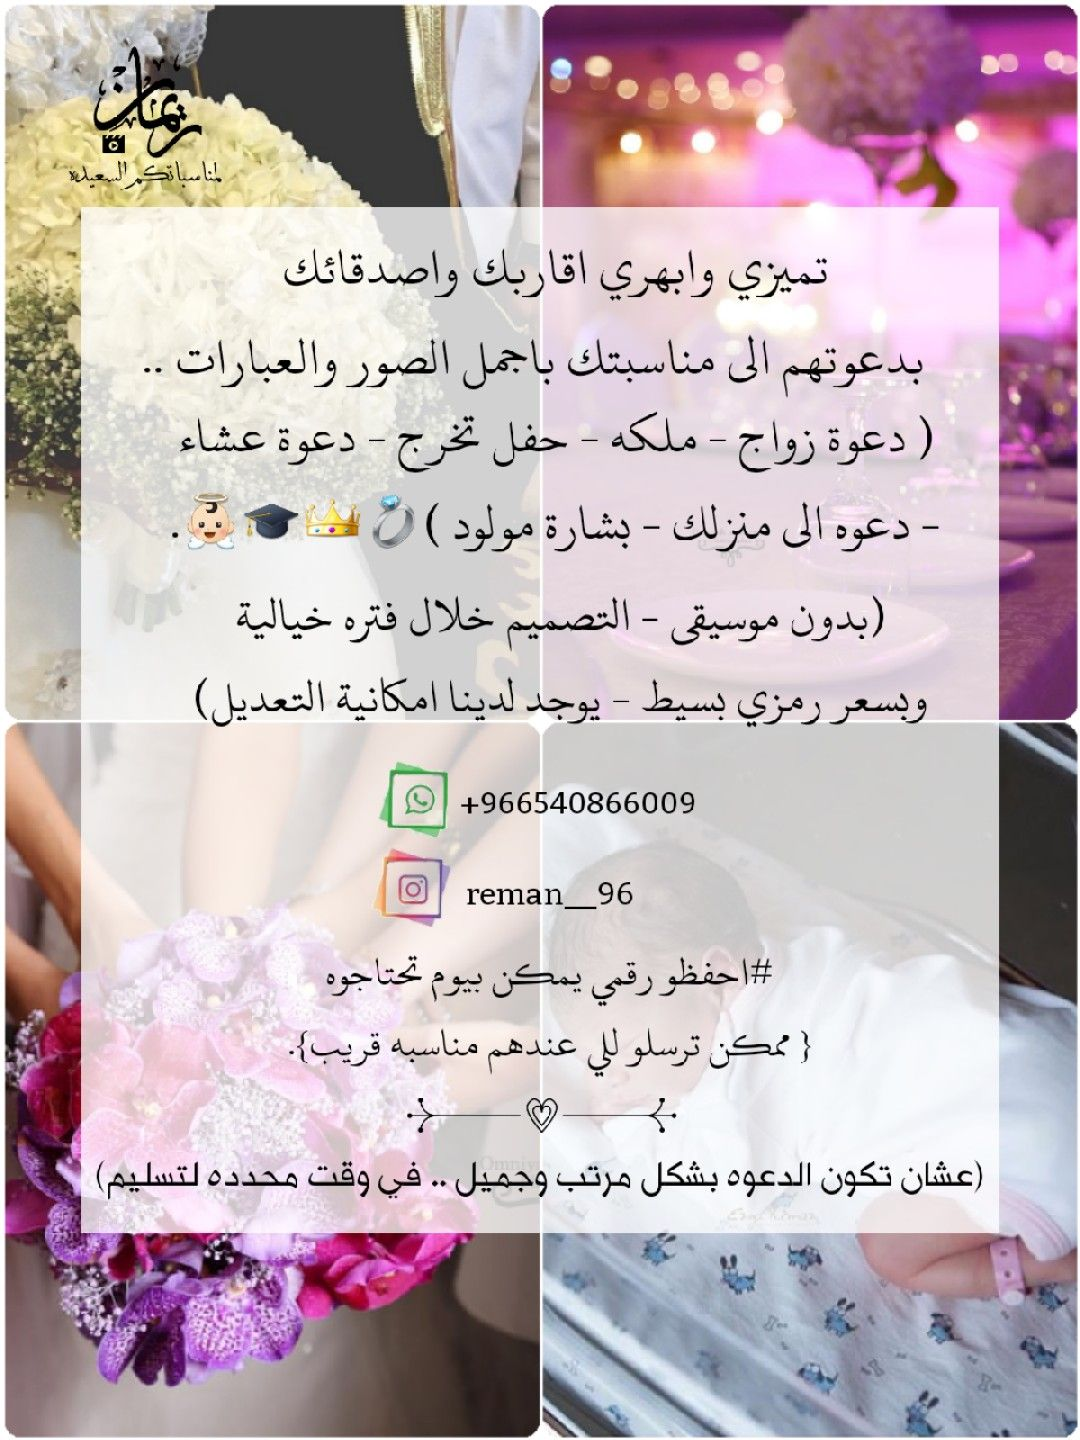 New The 10 Best Home Decor With Pictures بطاقة تخرج حسب الطلب Graduation Party Centerpieces Graduation Party Checklist Graduation Diy